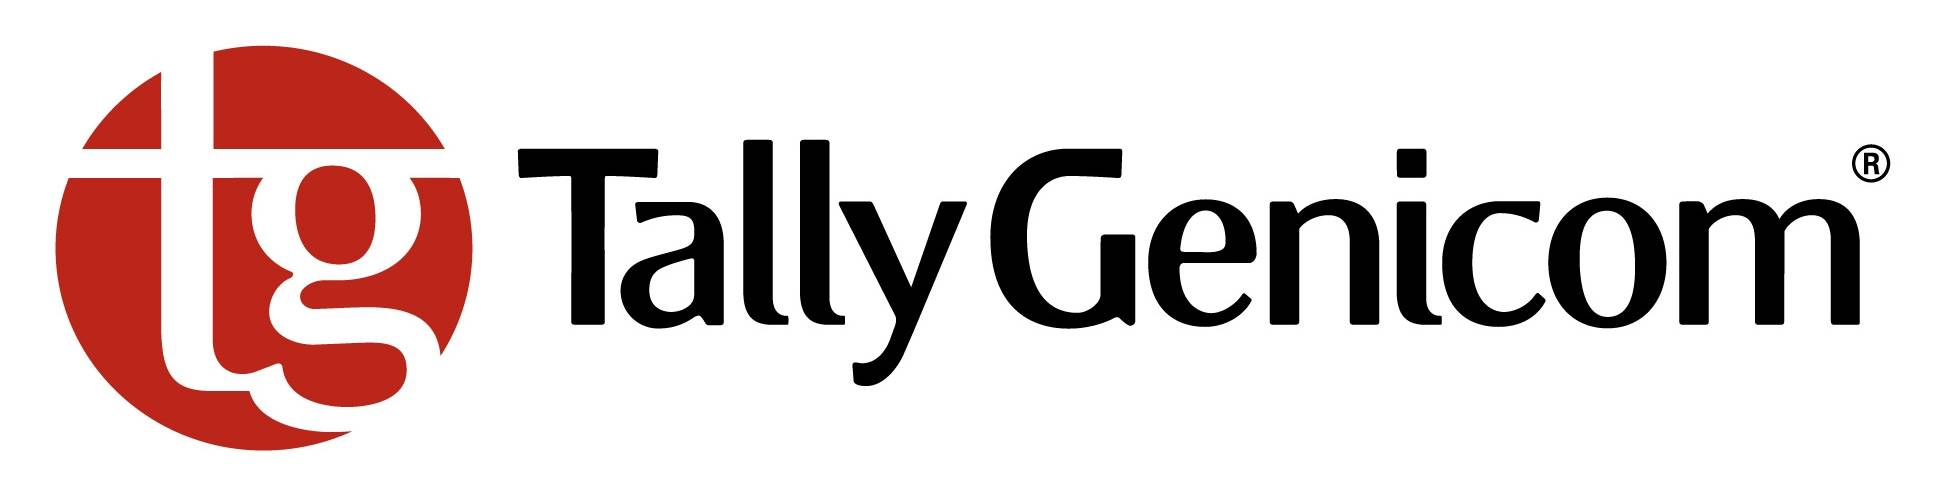 Red and black Tally Genicom logo.